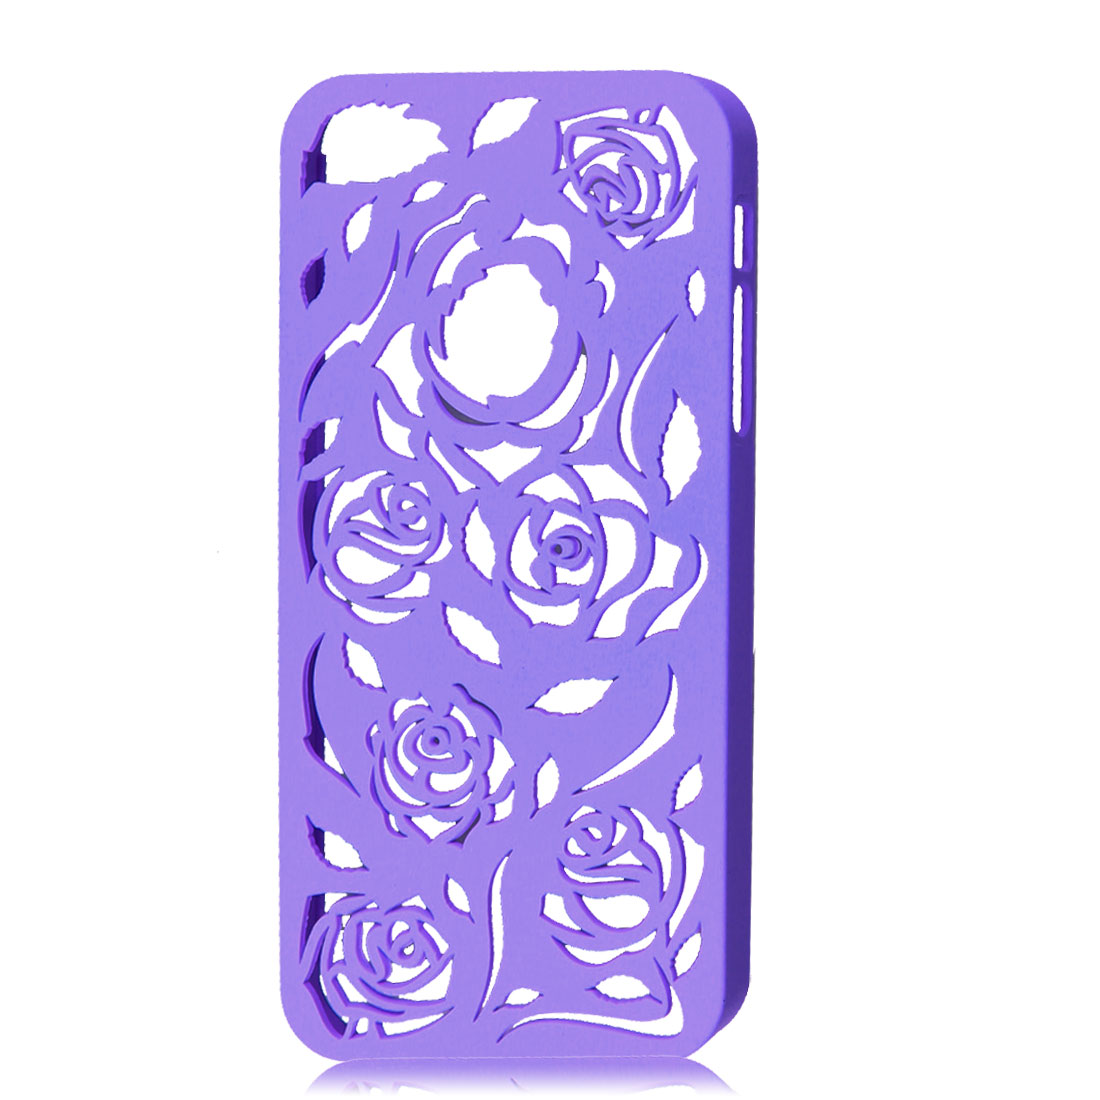 Hollow Out Rose Design Purple Back Case Cover for iPhone 5 5G 5th Gen